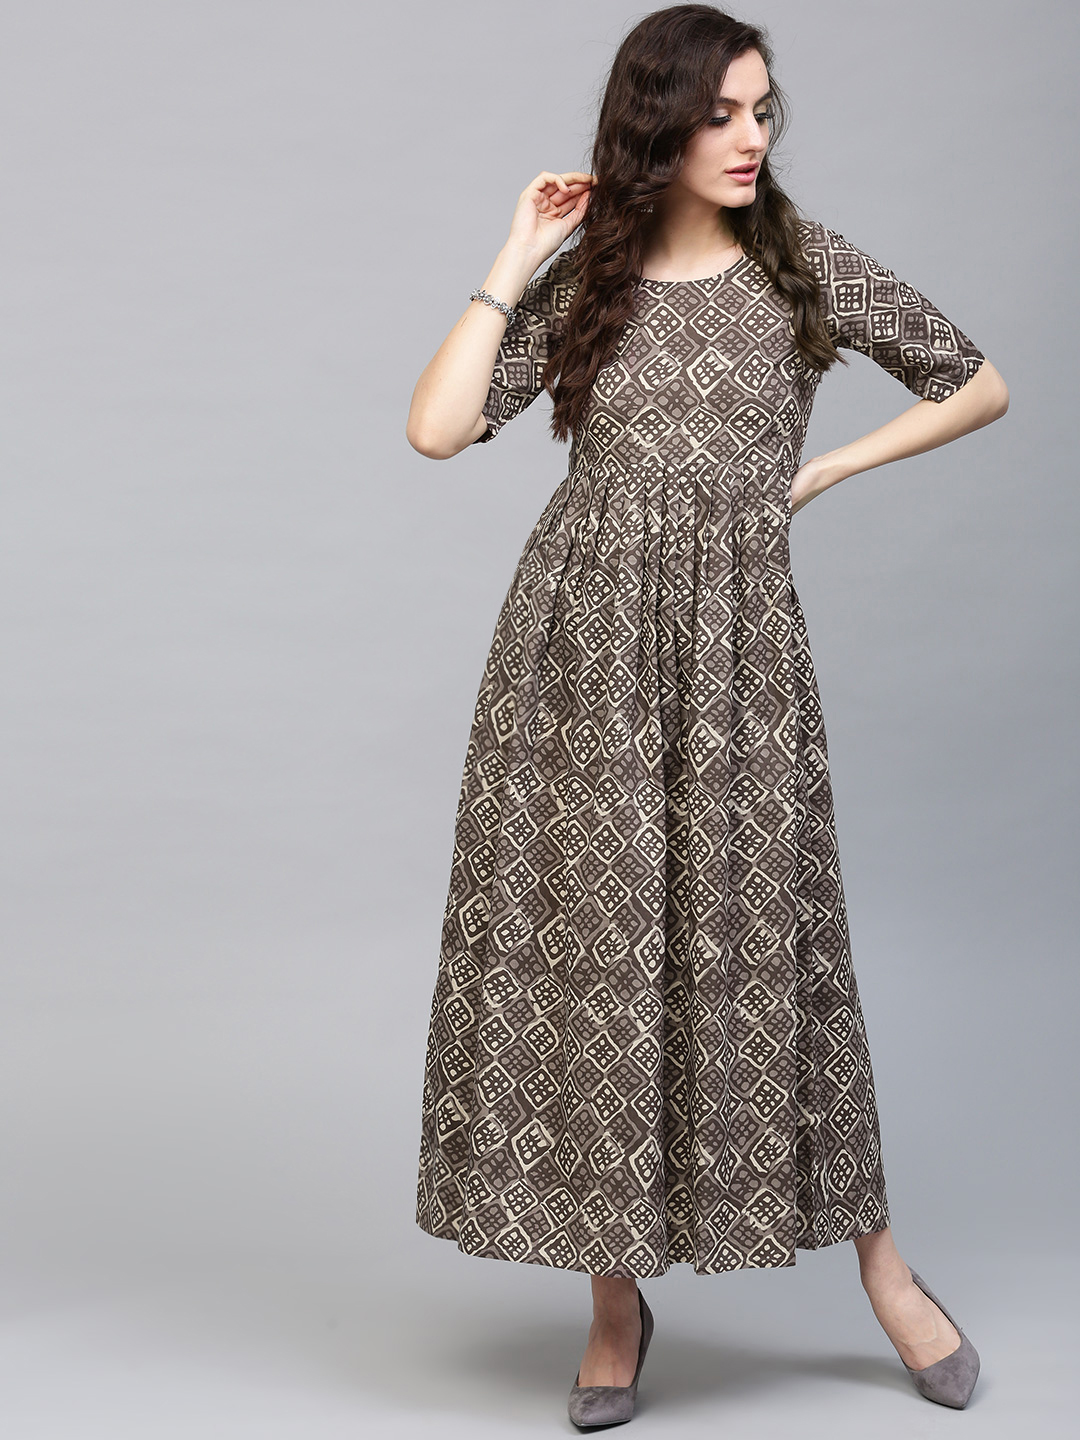 e0ca0b8b06be Buy AKS Women Grey Printed Maxi Dress with Gathers Online ...